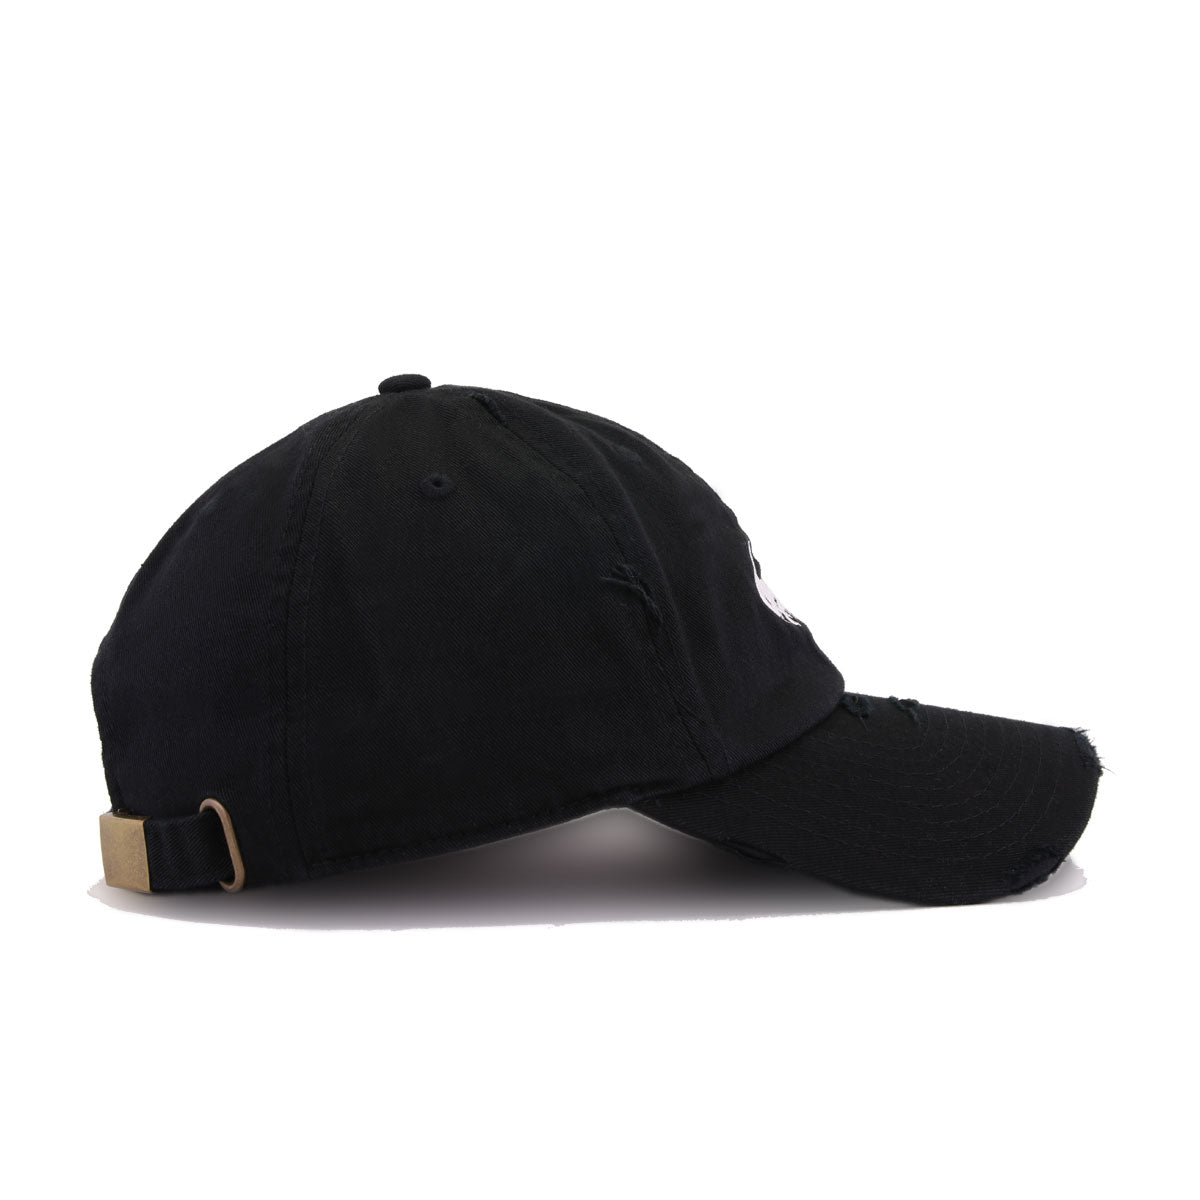 Distressed Sauce Black KBEthos Vintage Dad Hat